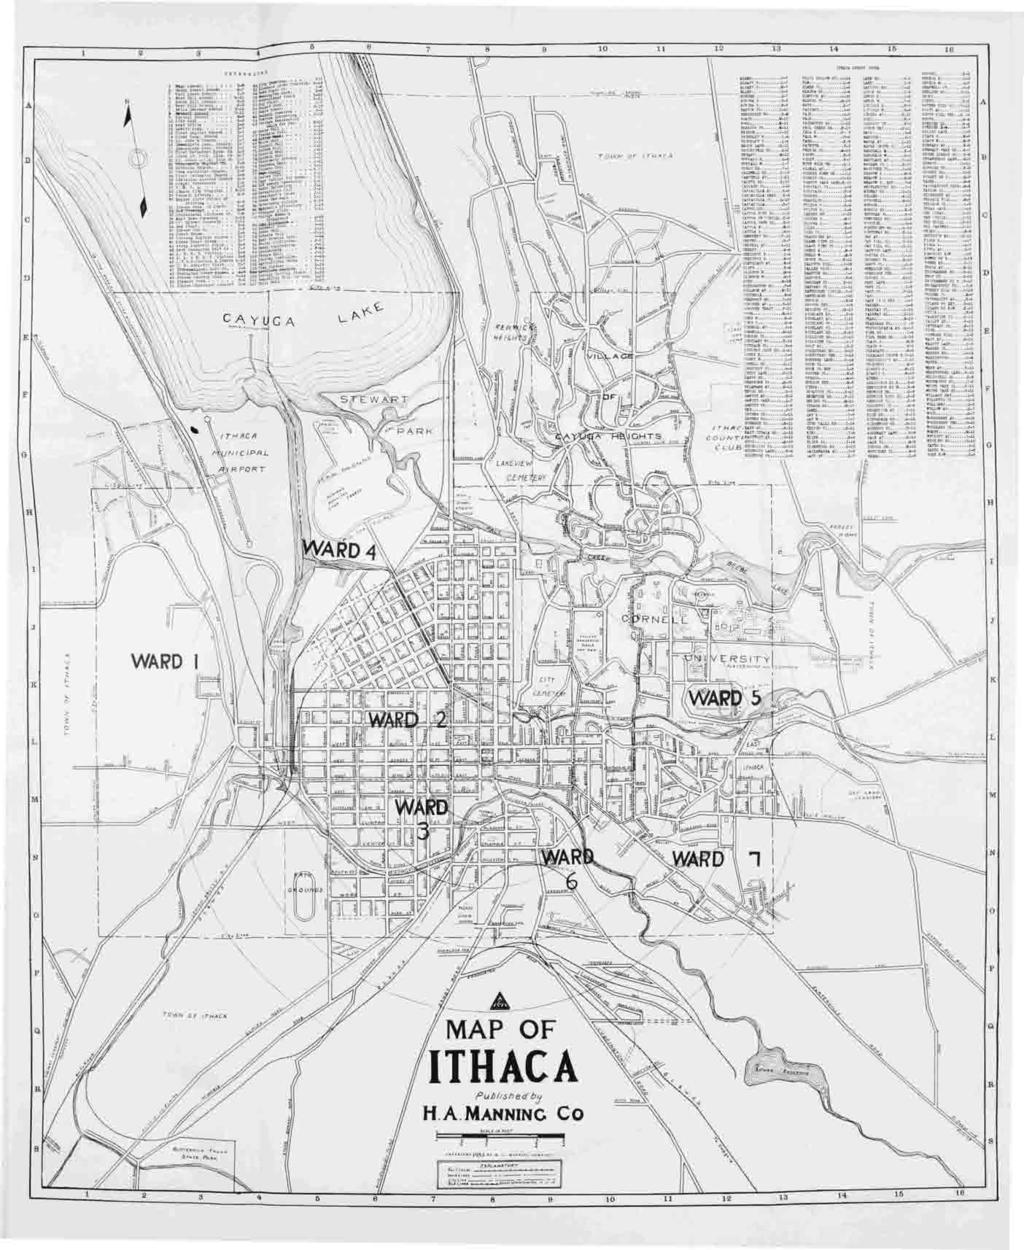 Ithaca Numerical Street Directory - PDF